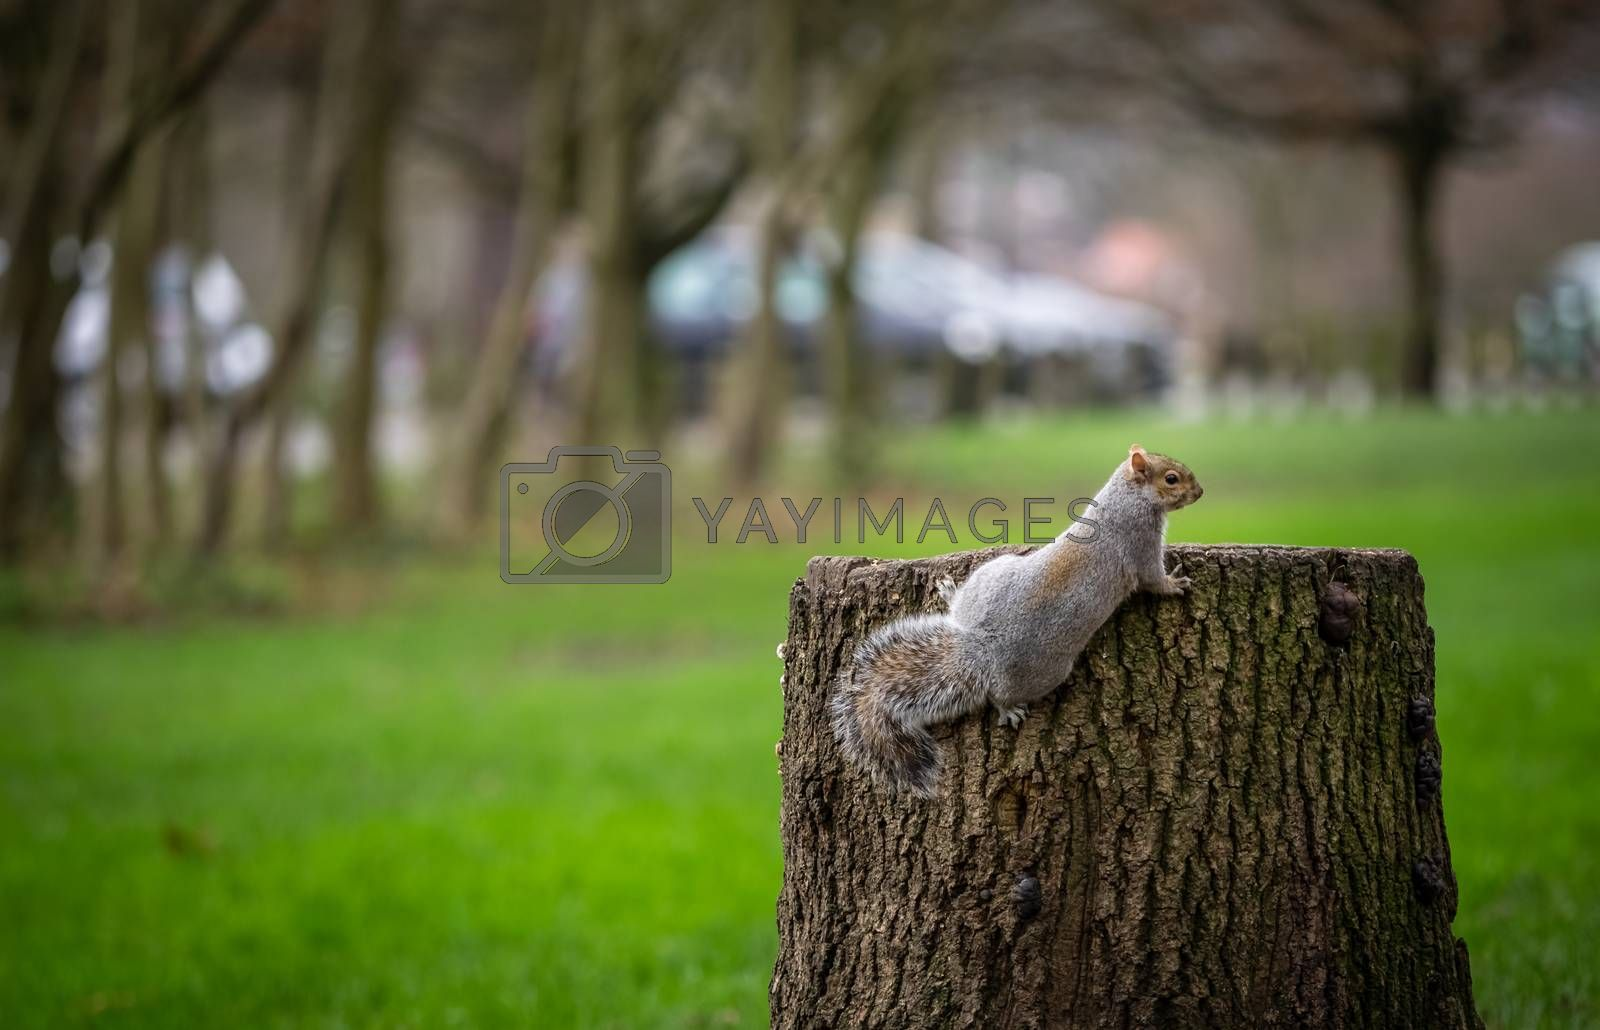 Close up of a grey squirrell climbing tree stump